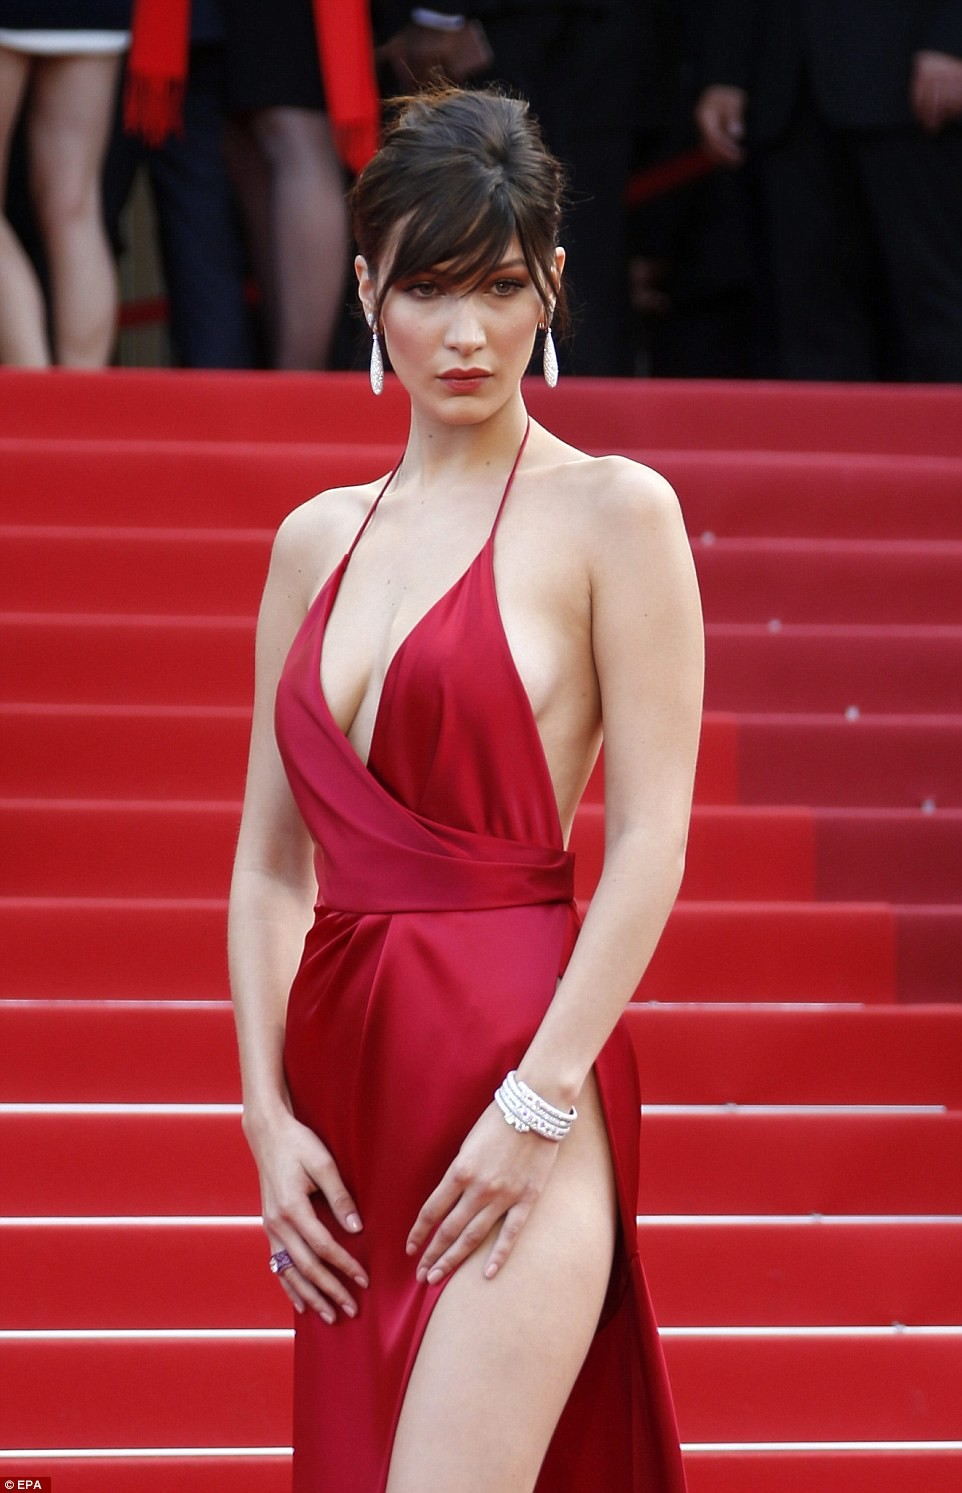 bella hadid red dress cannes 2016 (3)